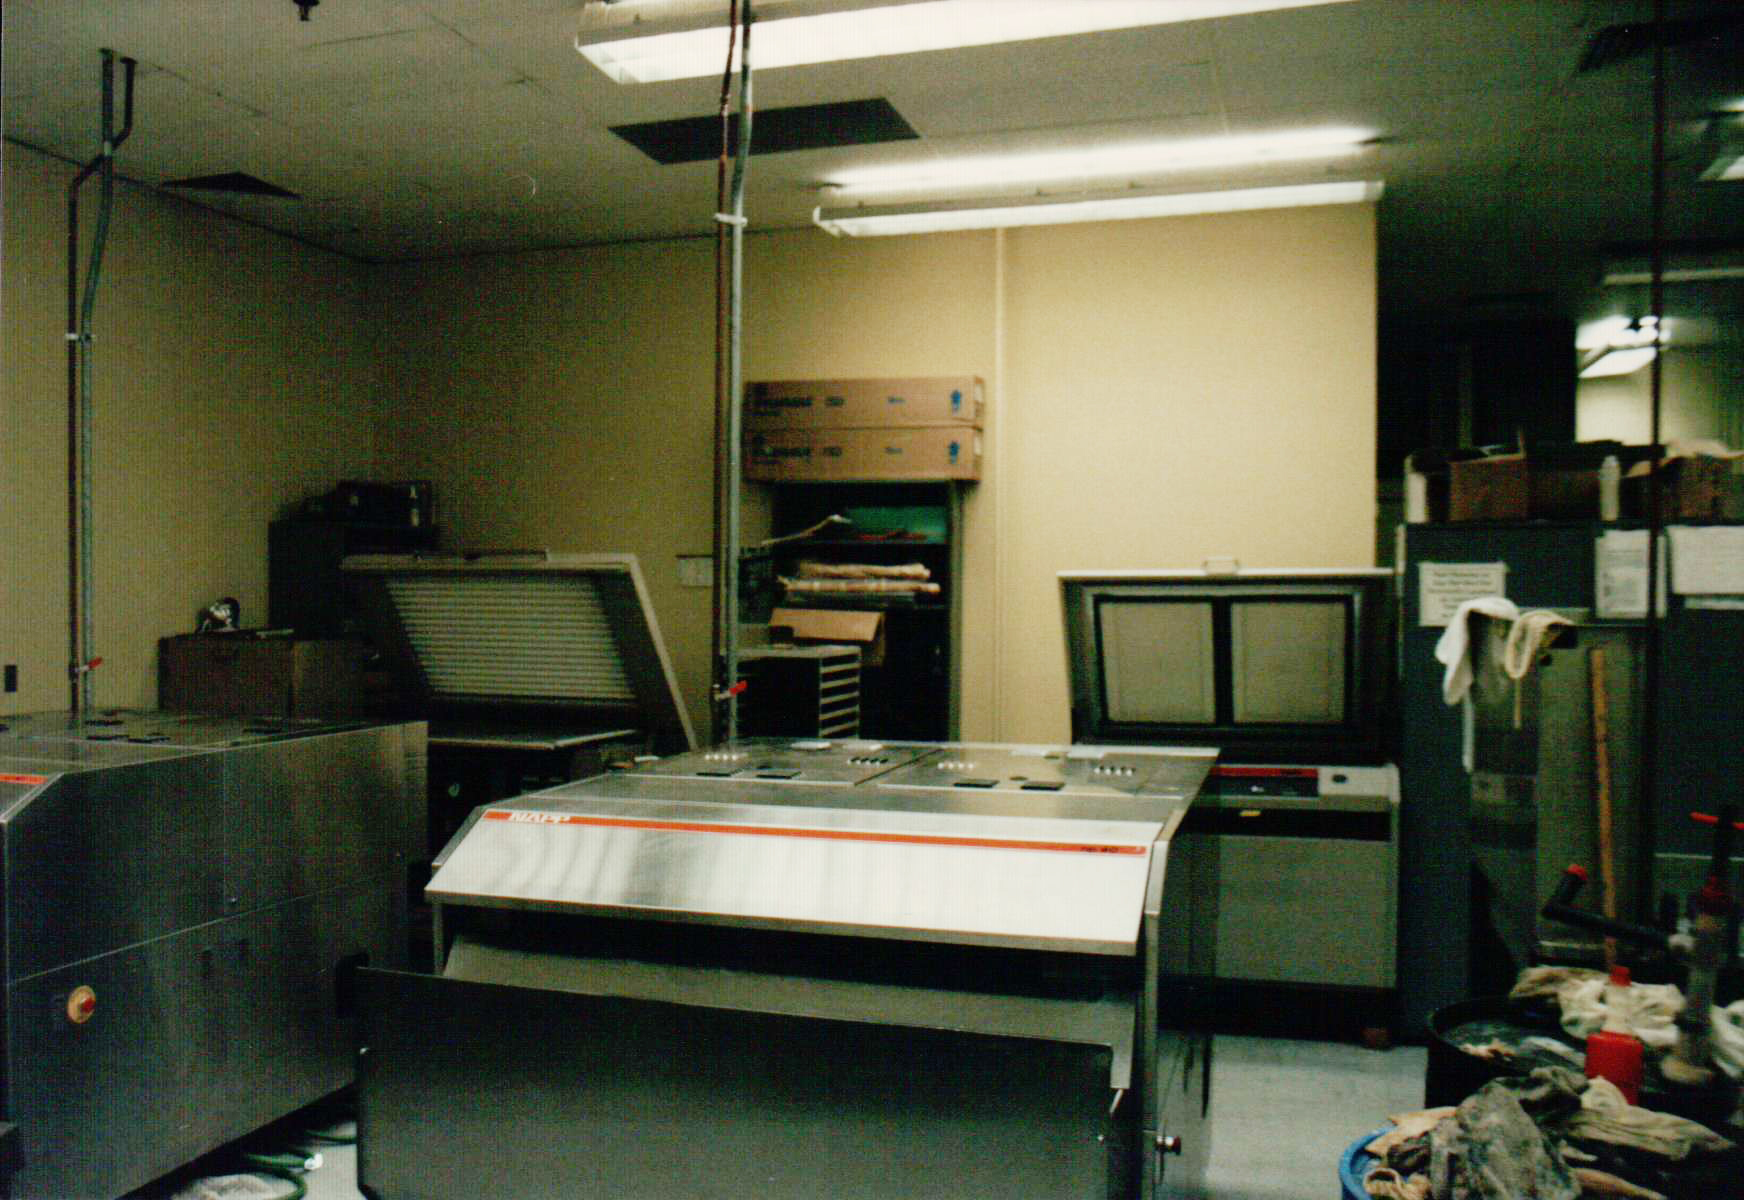 The platemaking department at The Kalamazoo Gazette. Another one of my jobs was as a platemaking technician. It was one of my favorite jobs.